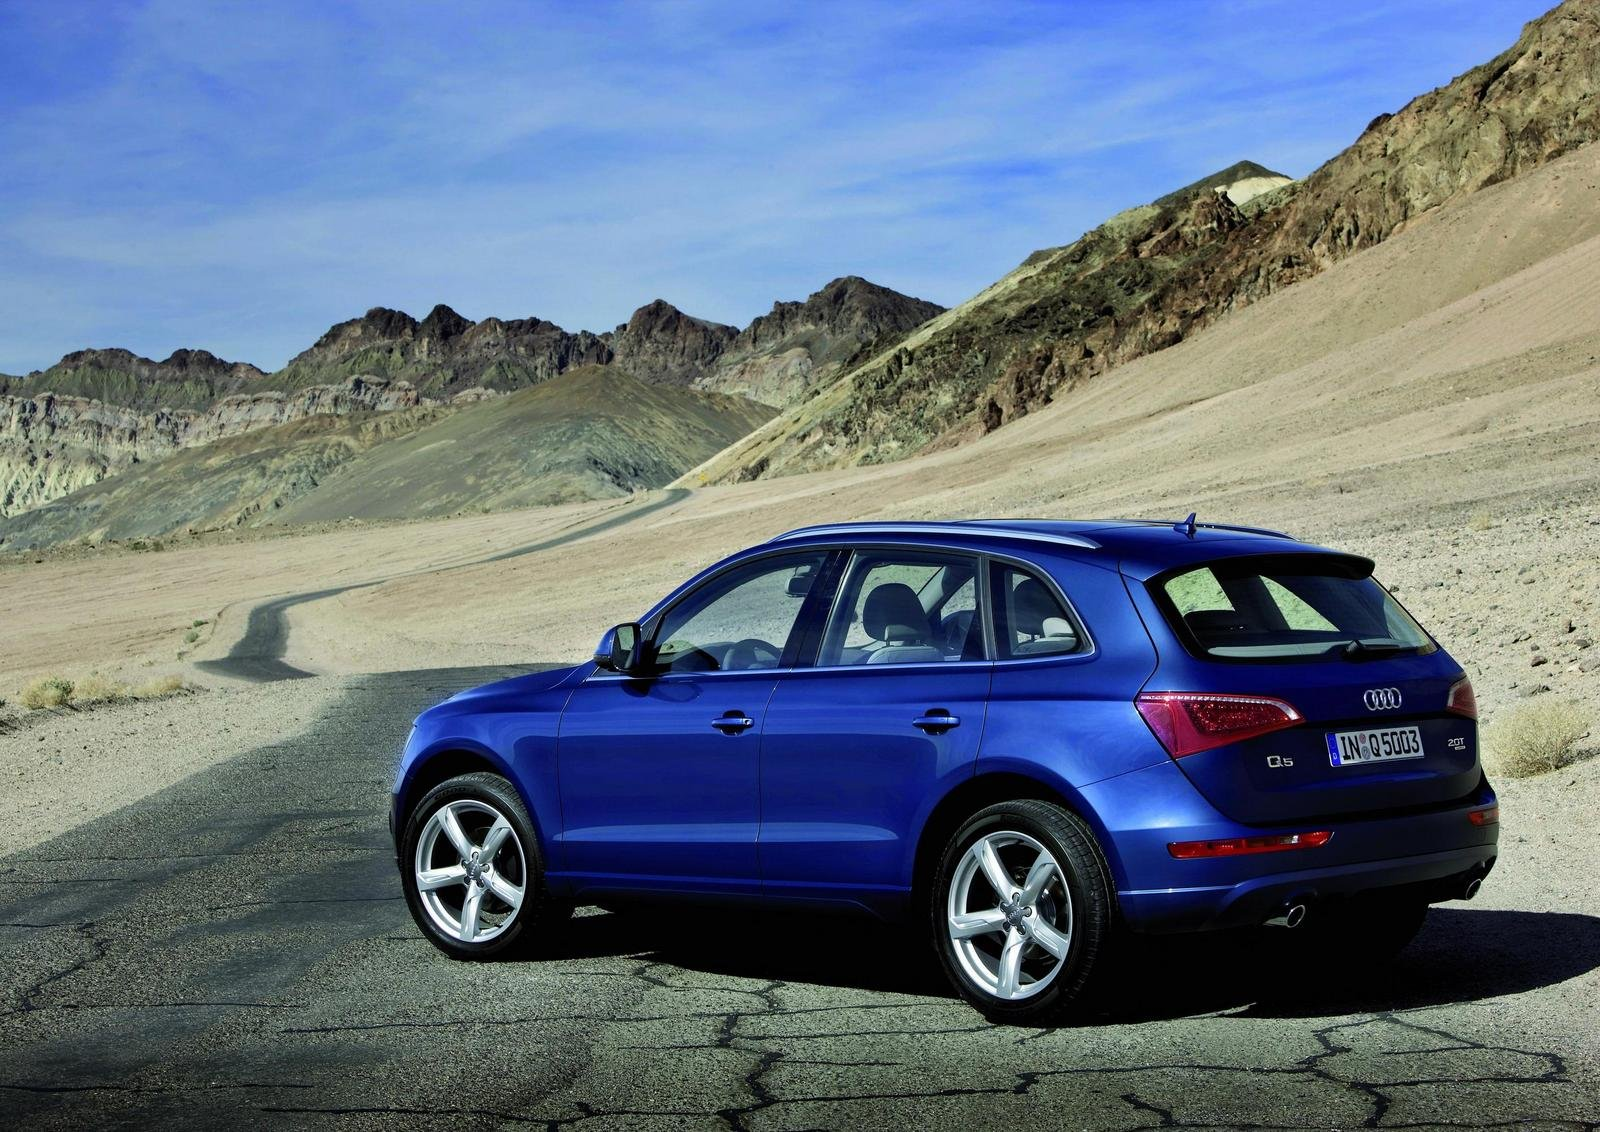 2009 audi q5 picture 255287 car review top speed. Black Bedroom Furniture Sets. Home Design Ideas